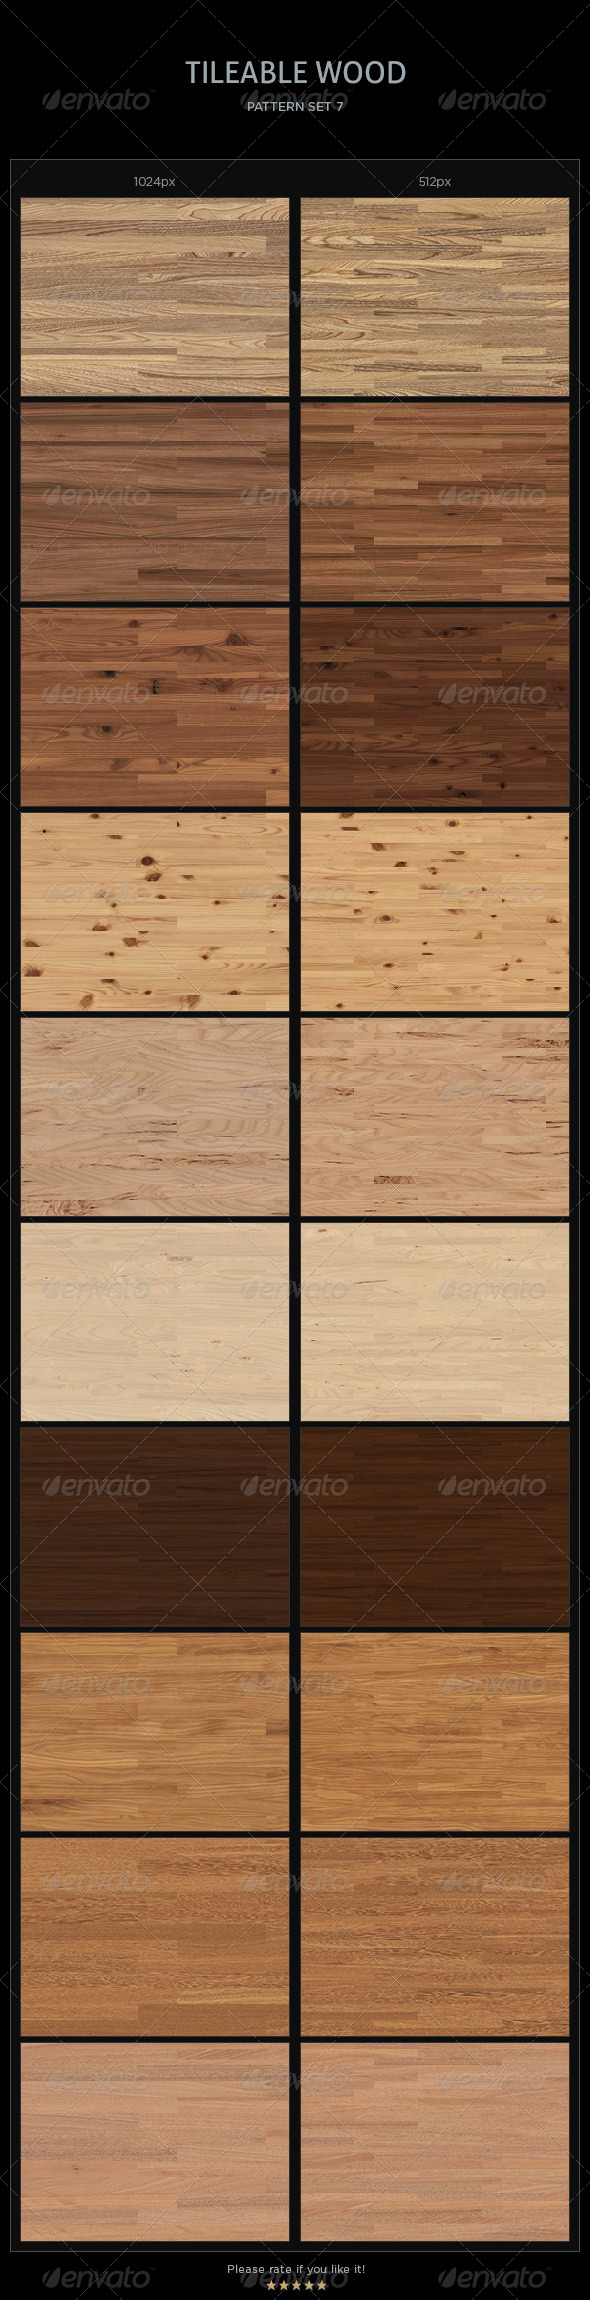 GraphicRiver 20 Tileable Wood Textures Patterns 4258231